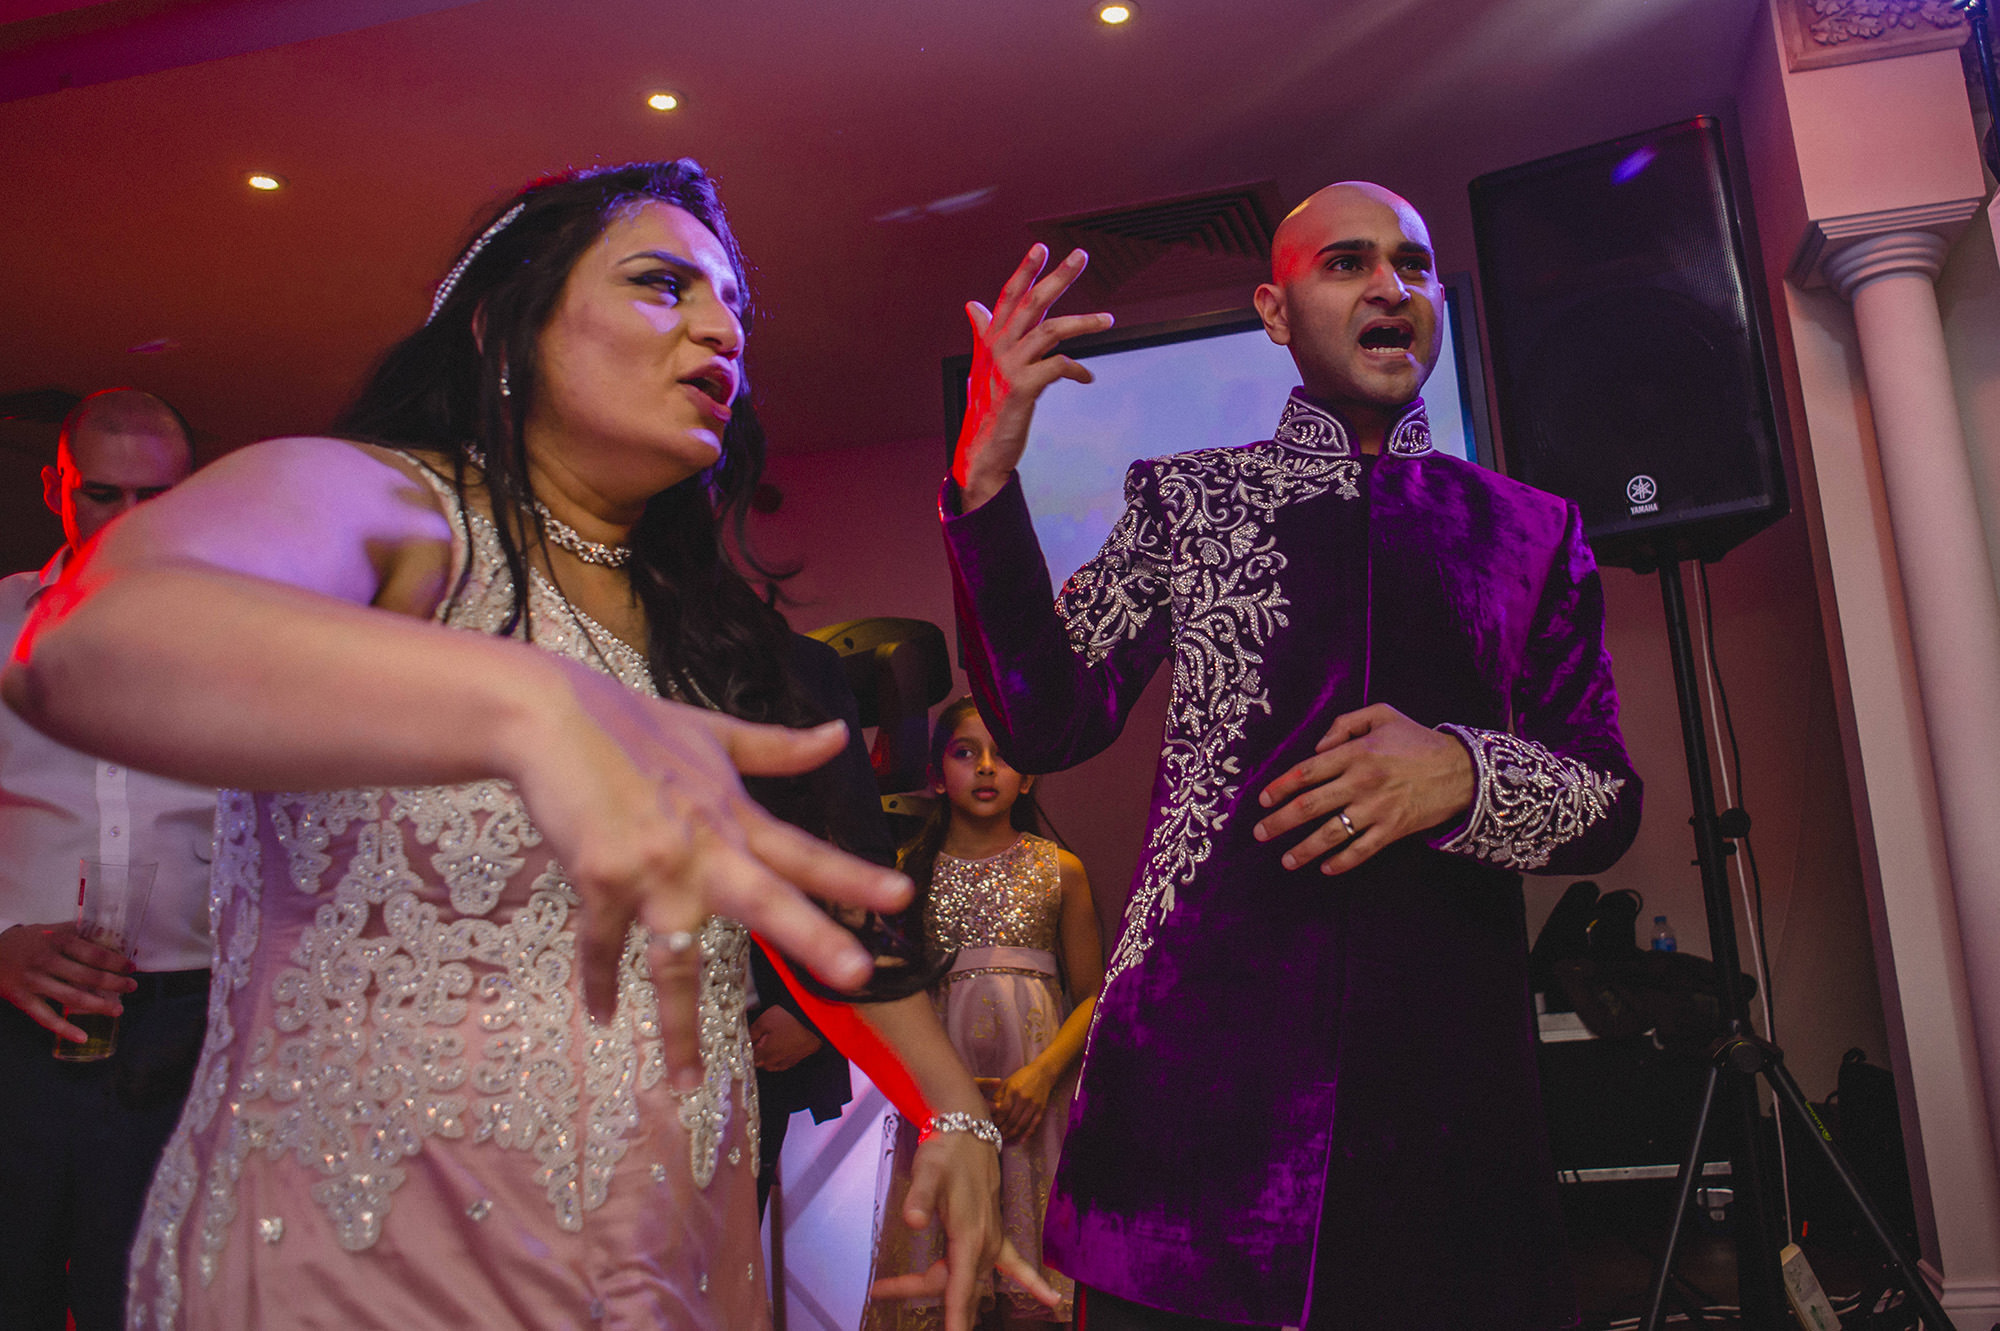 bride and groom partying at their wedding reception